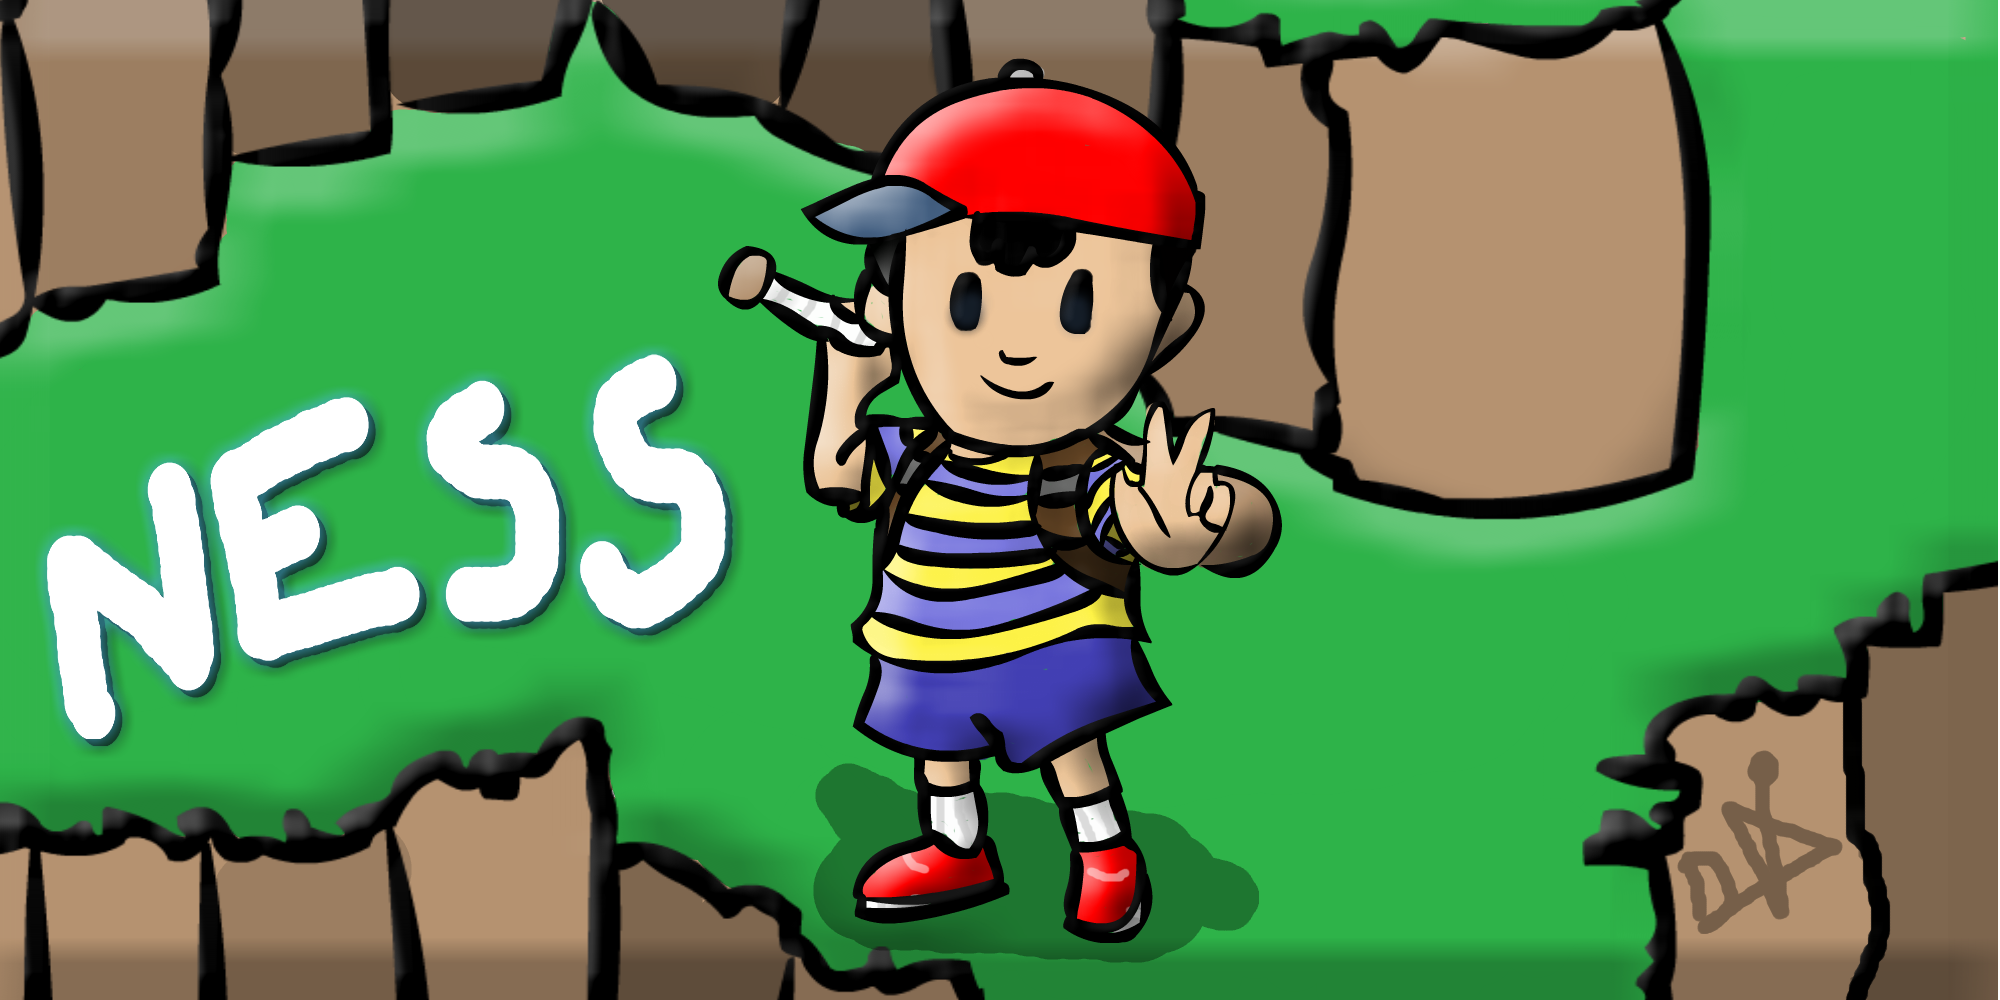 Ness - Earthbound